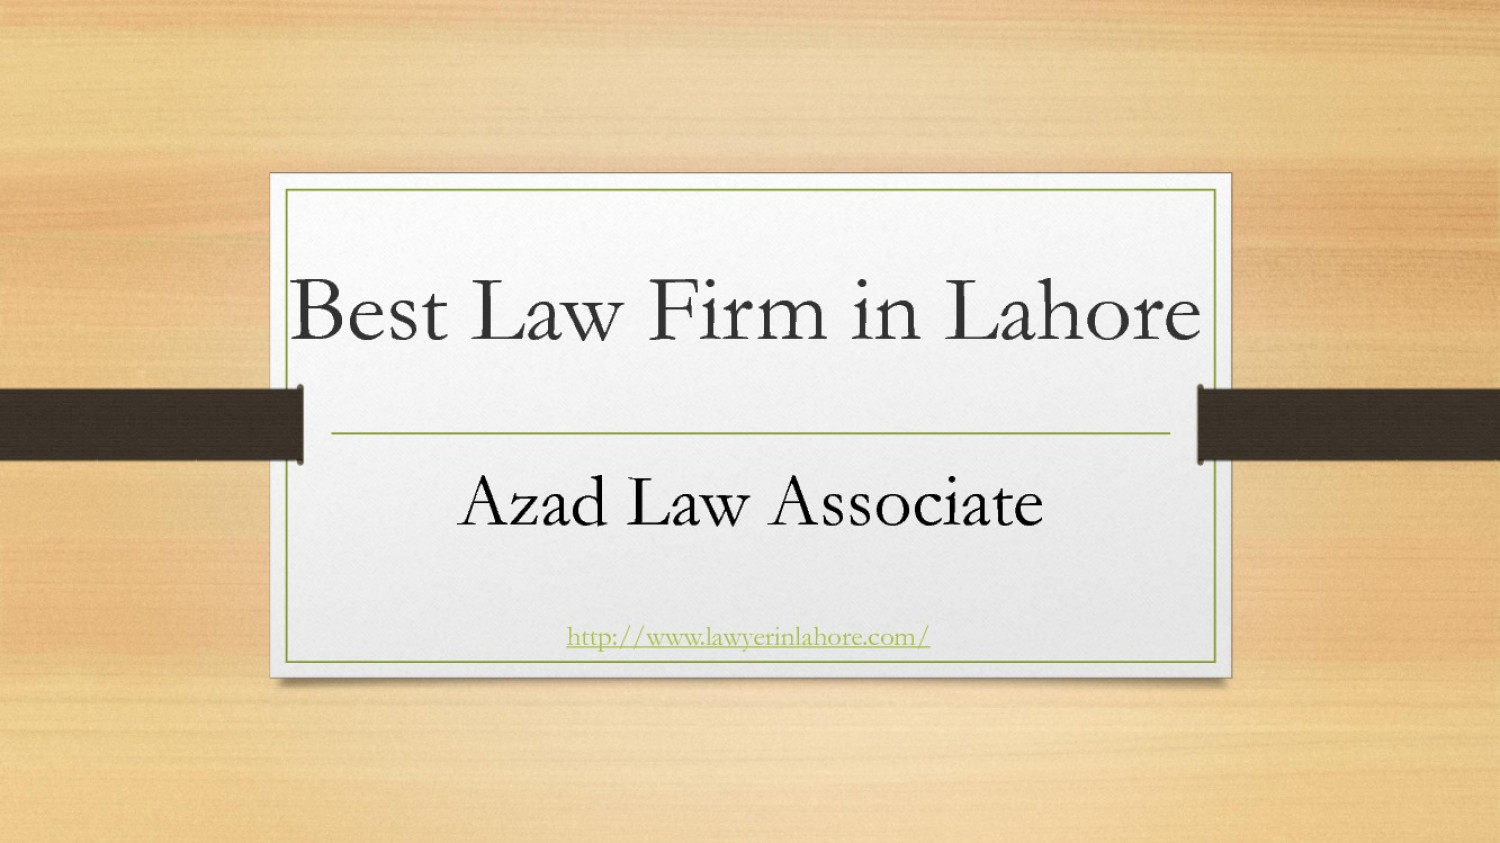 Law Firm in Lahore - Solve Your Legal Issue By Best Law Firms in Lahore Infographic